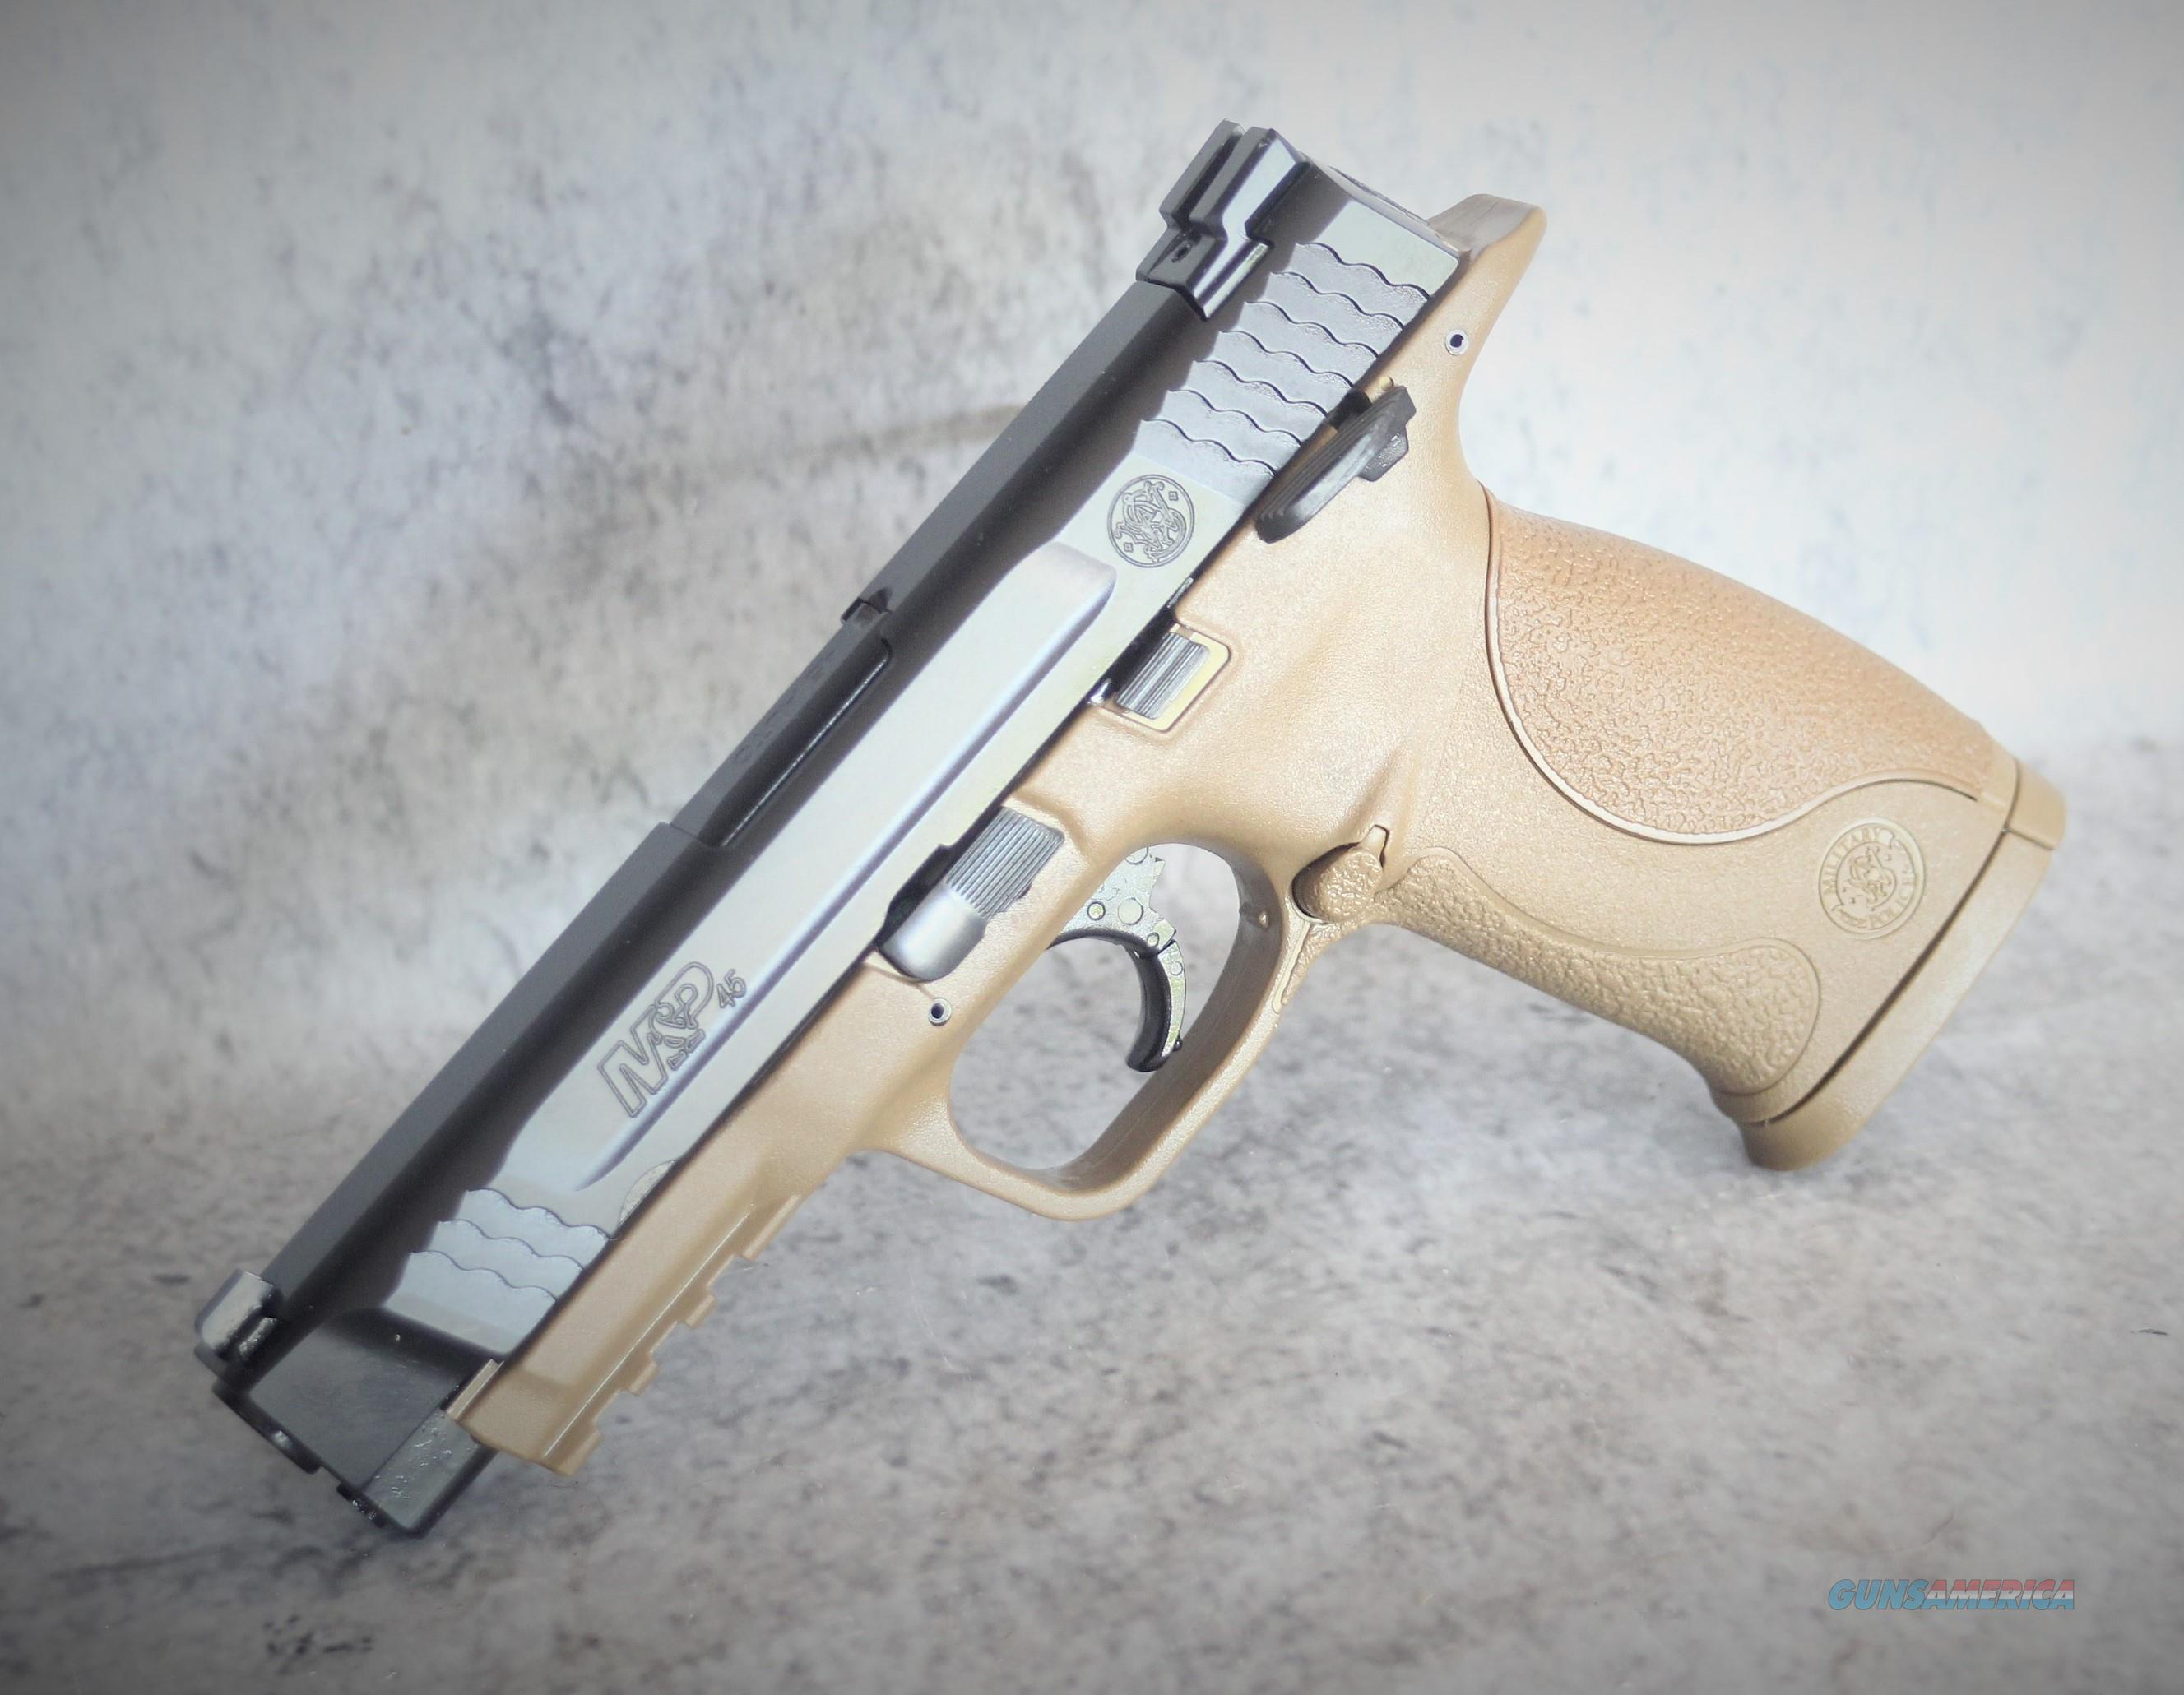 "01 S&W fde limIted SALE ENDS 10-30 EASY PAY $49   layaway S&W M&P45 .45ACP 4.5"" FS 10-SH W/SAFETY BLK SS/DRK BRN POLY 109156 SMITH AND WESSON MP45 45ACP DARK EARTH 109156  Guns > Pistols > Smith & Wesson Pistols - Autos > Polymer Frame"